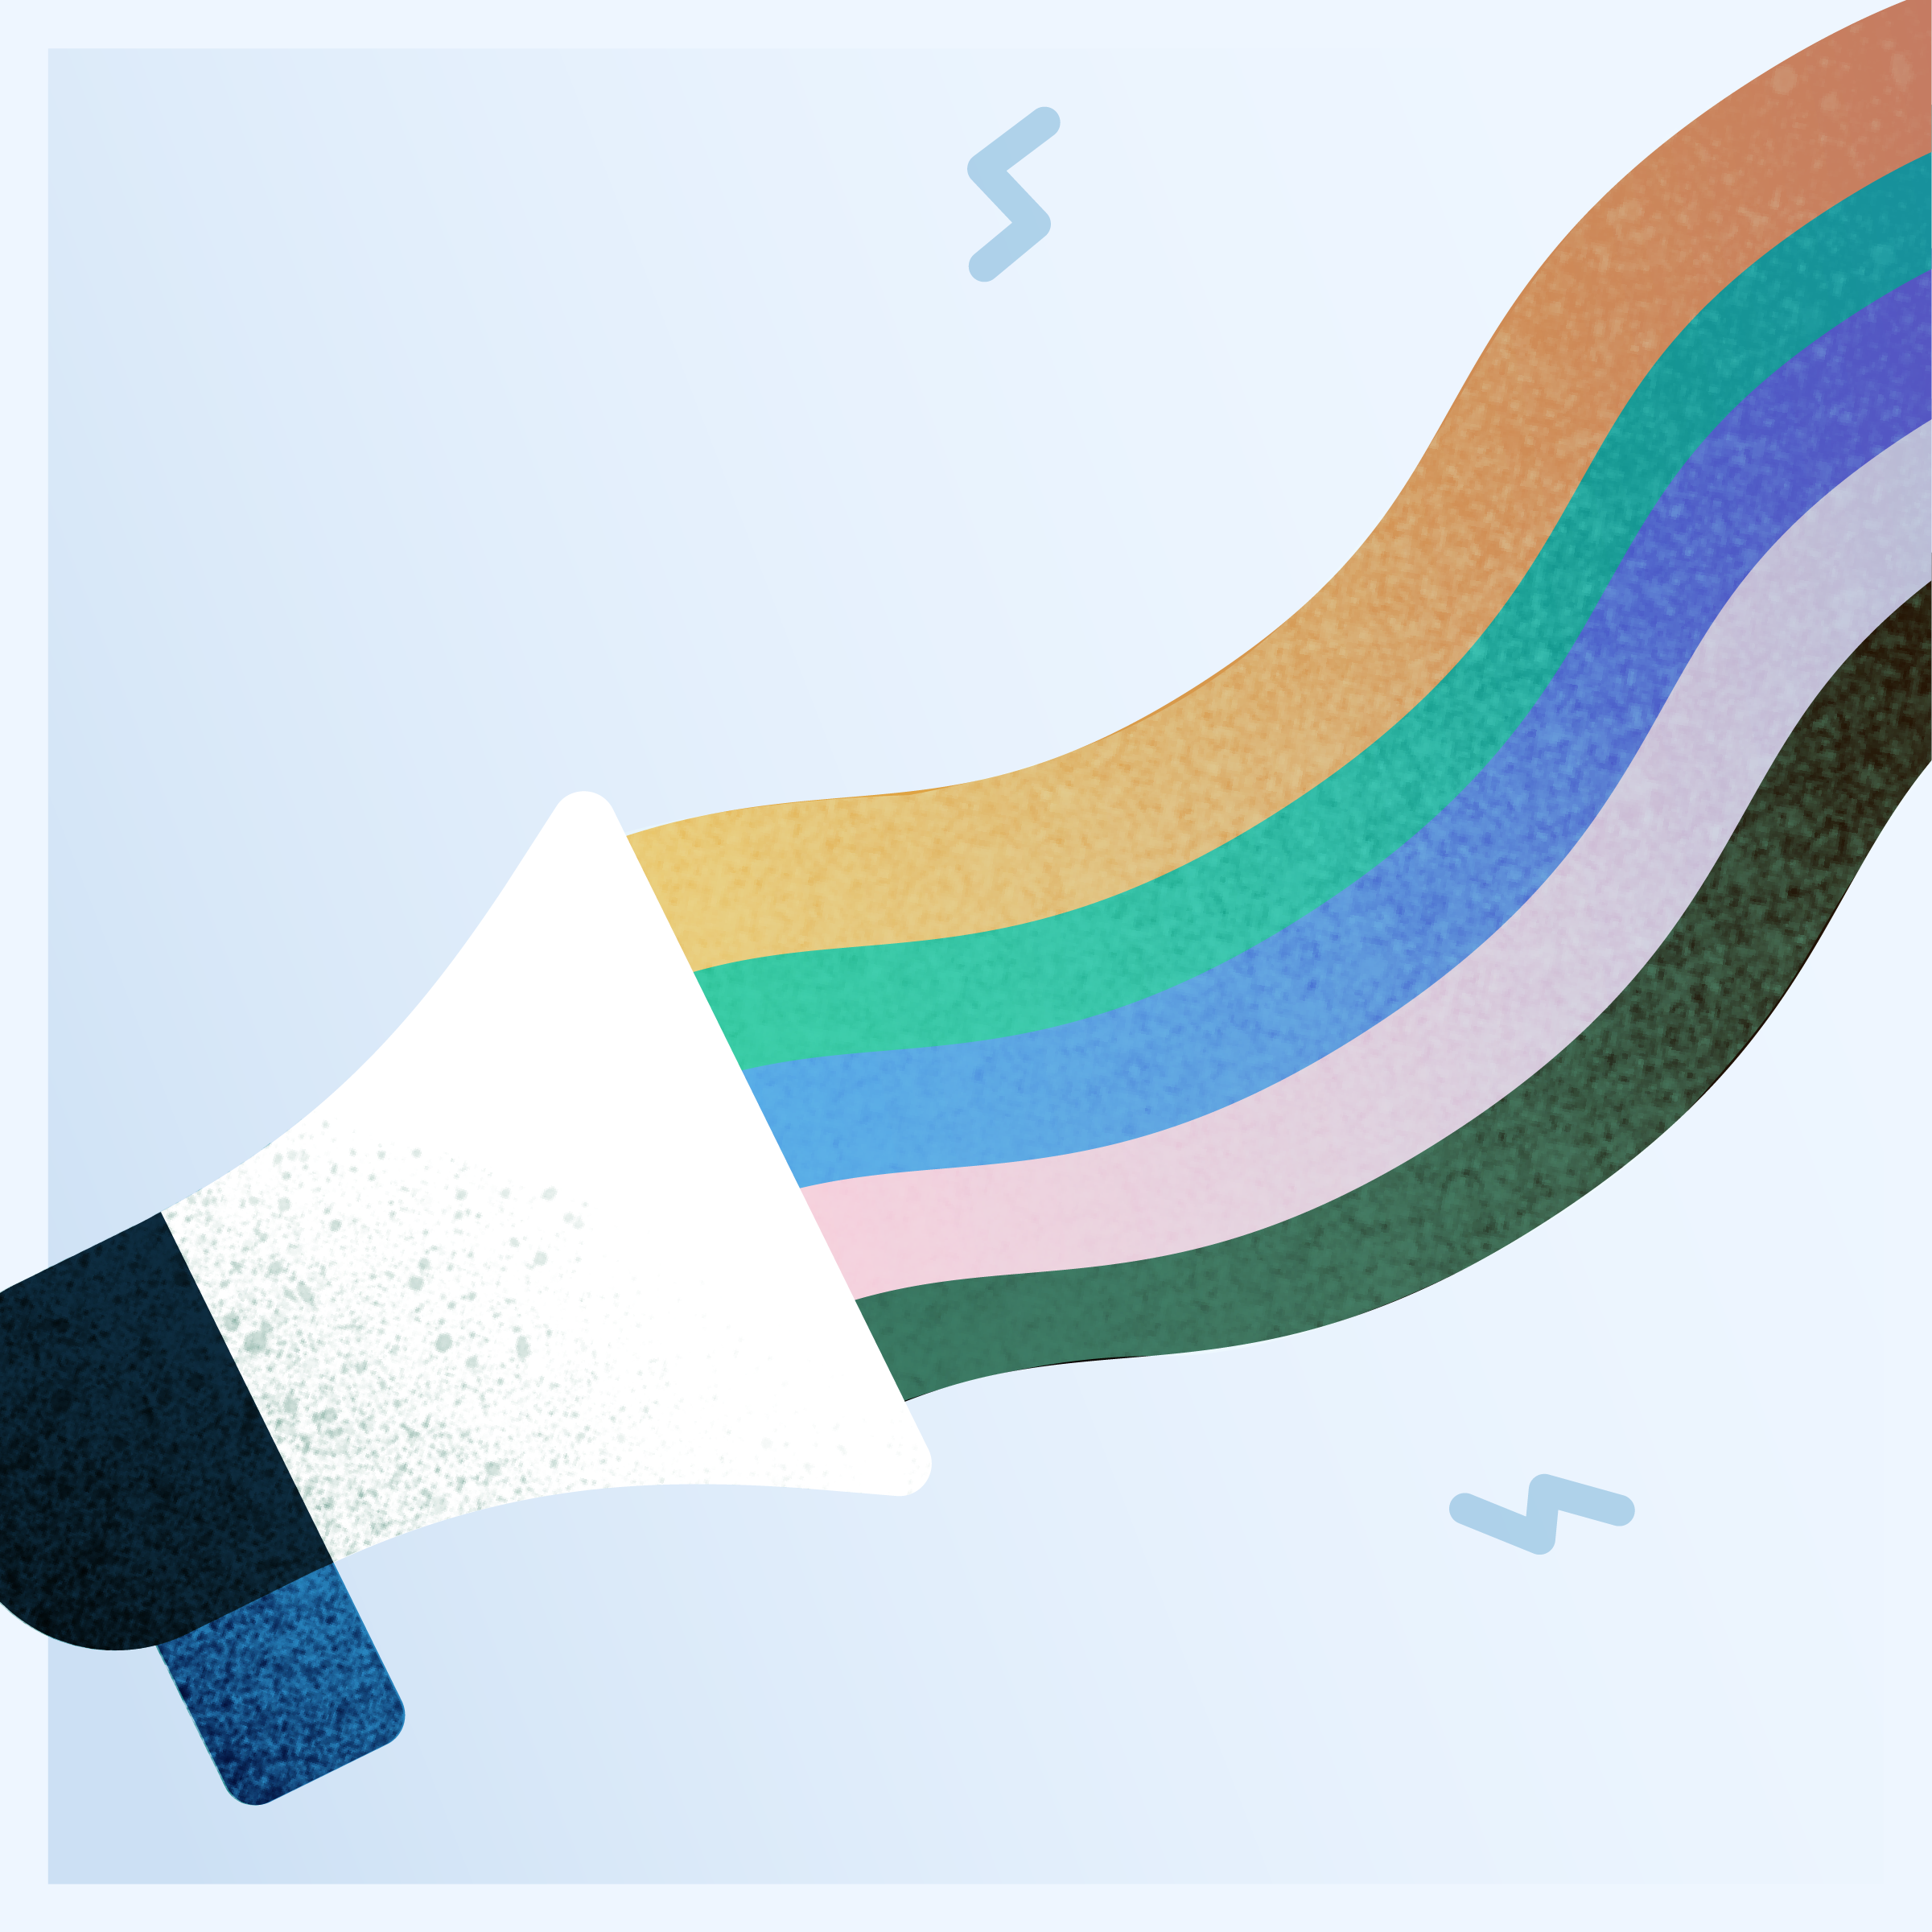 LGBTQ+ Teacher Spotlight: What Does Pride Mean to You?